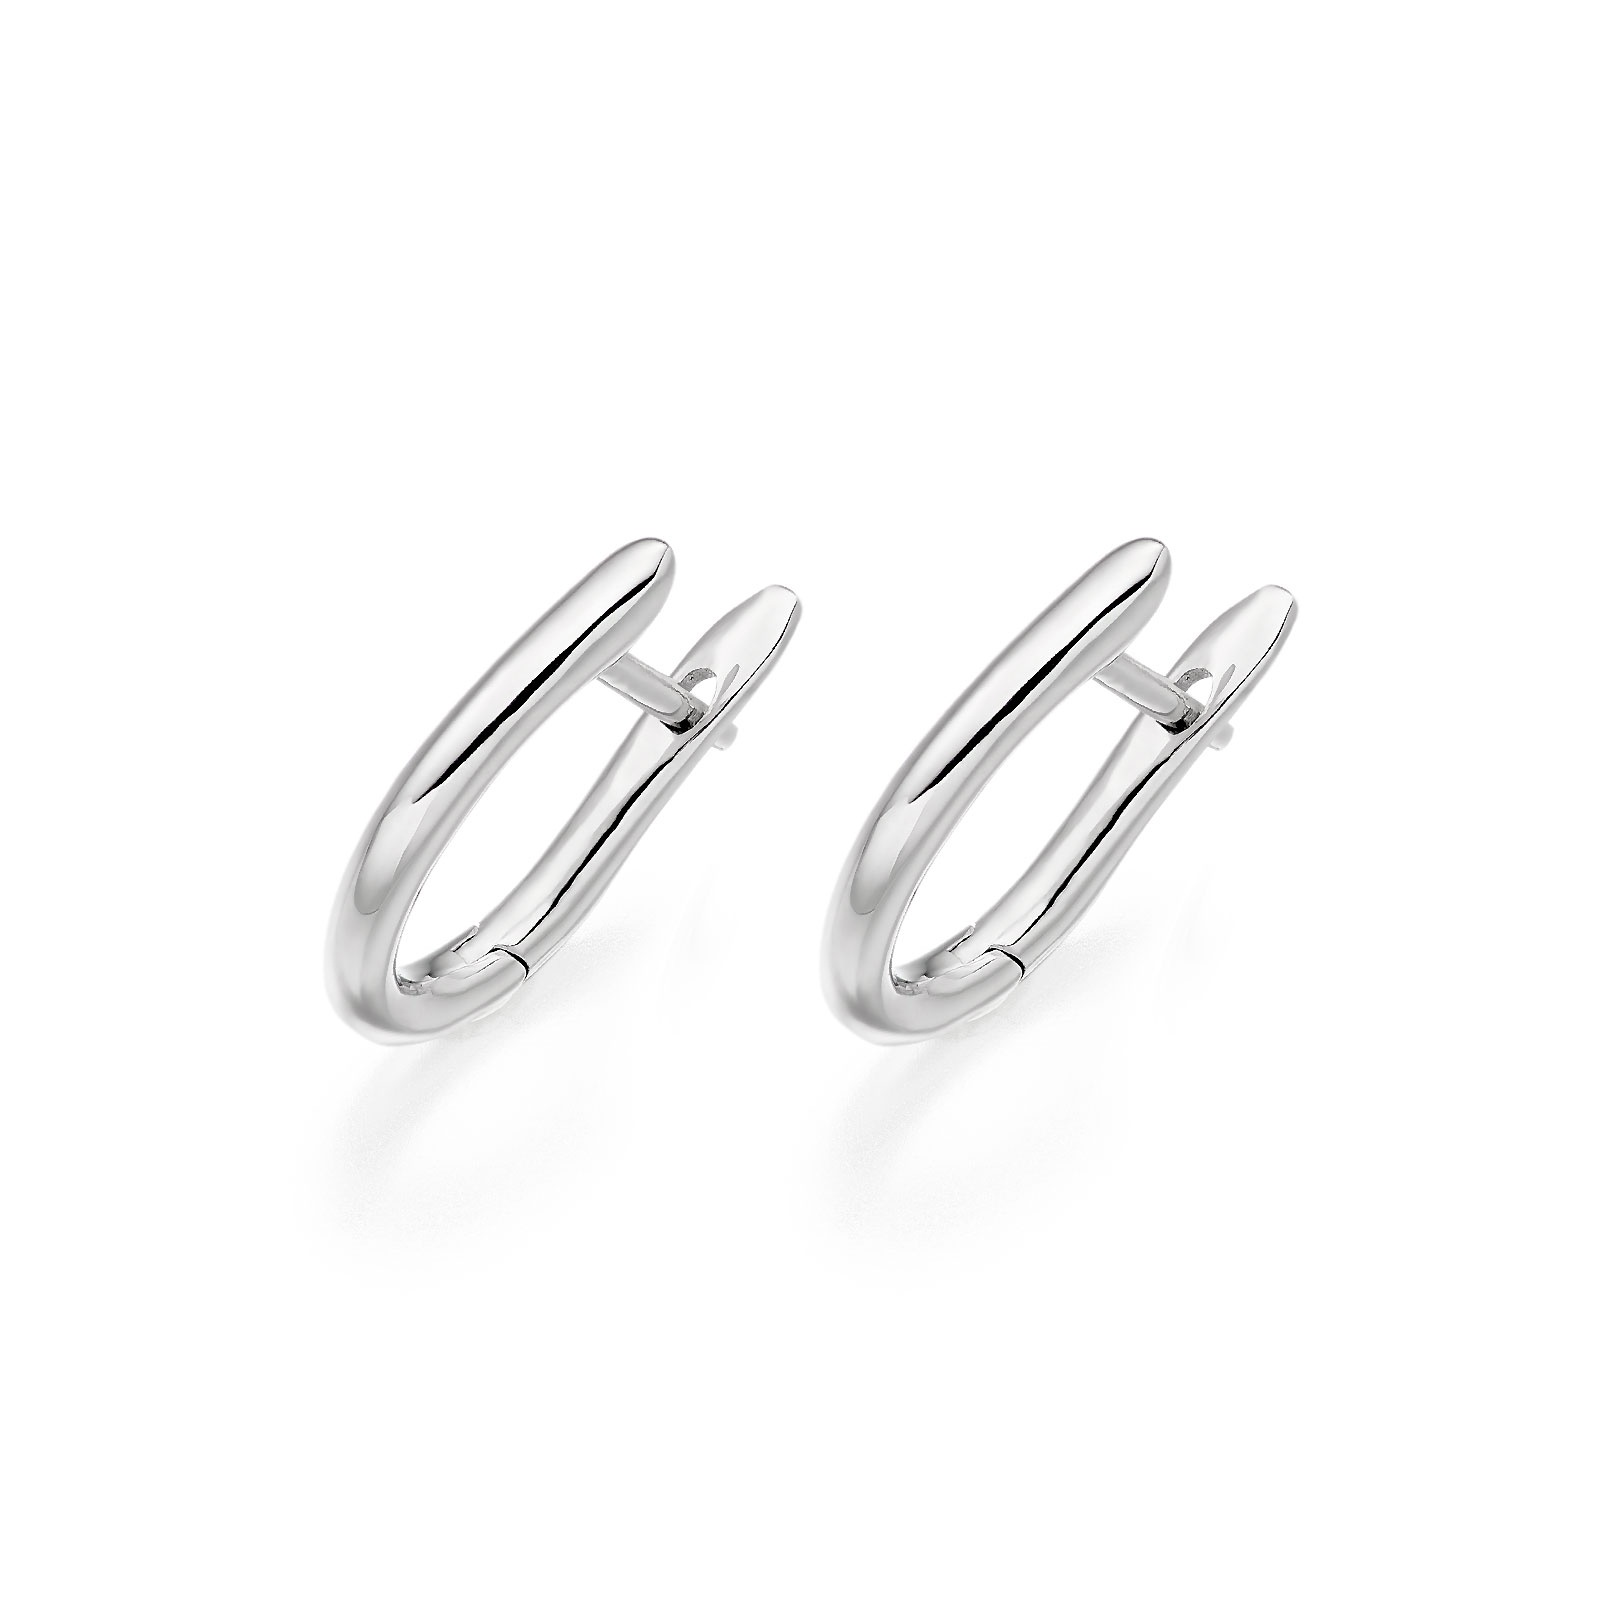 White Gold Huggie Leverback Earrings-FILEWG1141-1